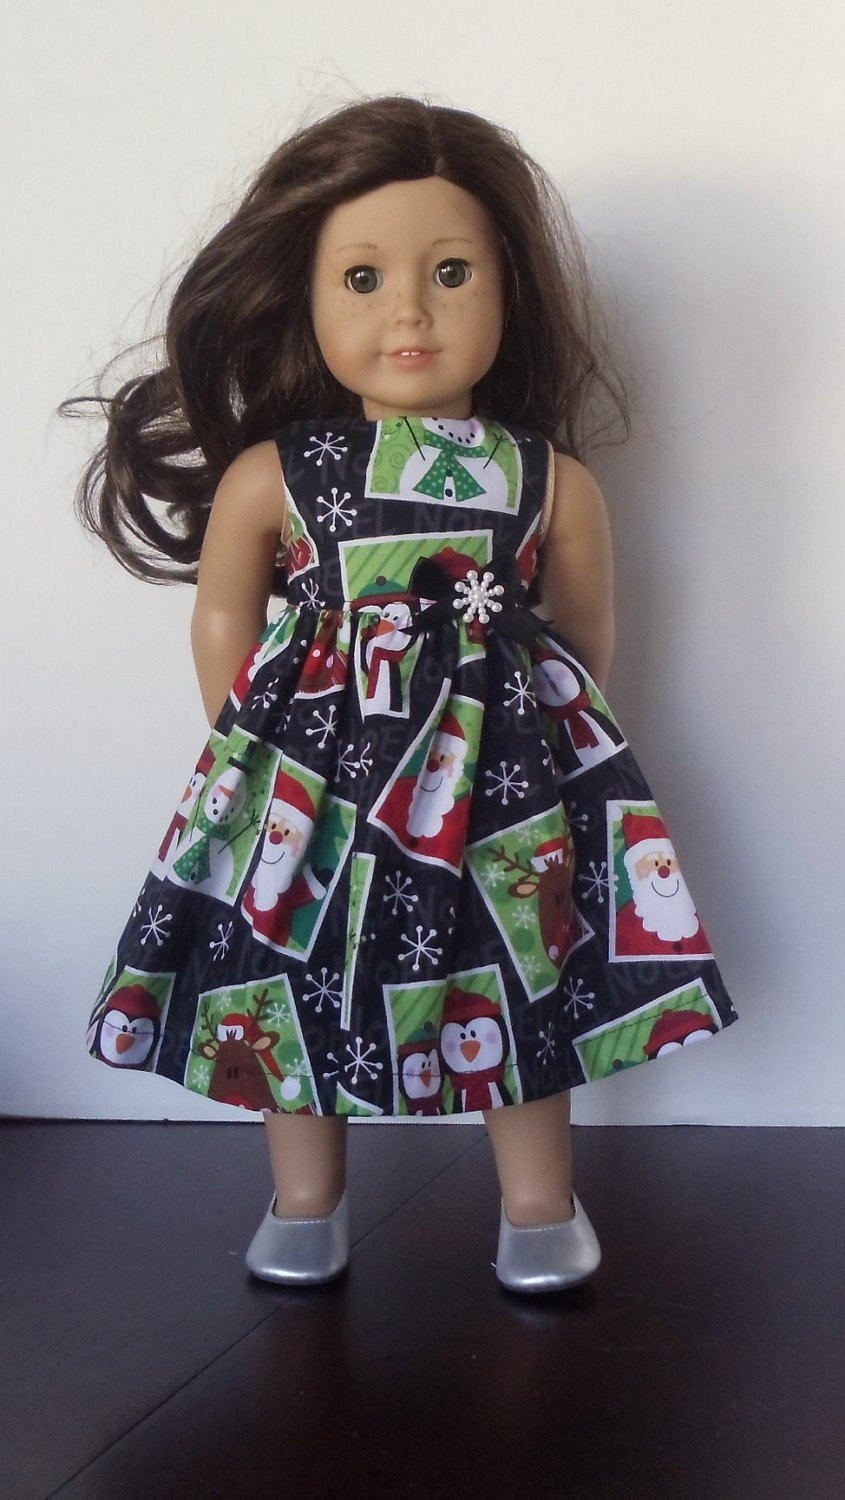 Fresh Camelot S Treasures American Girl Doll Clothes Pretty American Girl Doll Christmas Outfits Of Wonderful 40 Ideas American Girl Doll Christmas Outfits